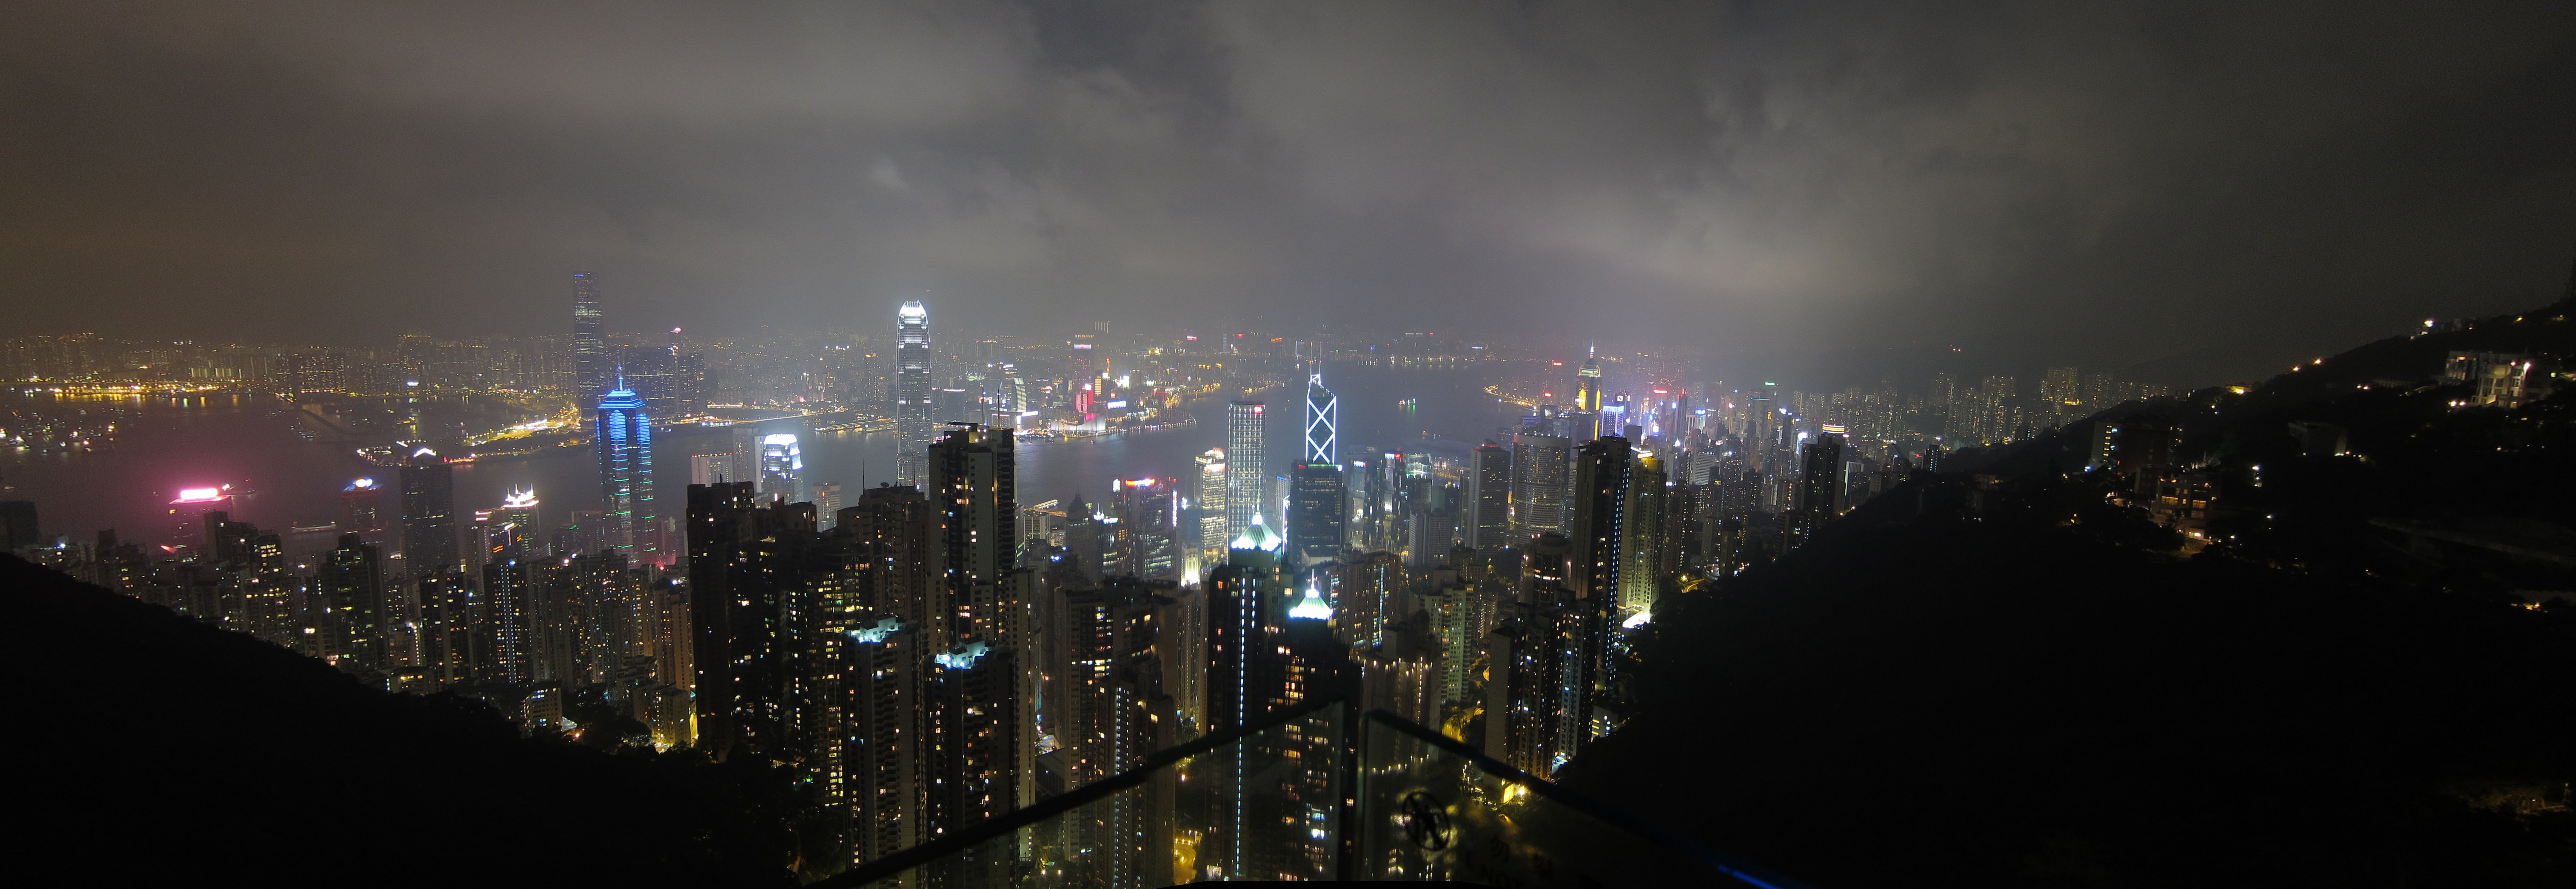 Best place to hook up in hong kong